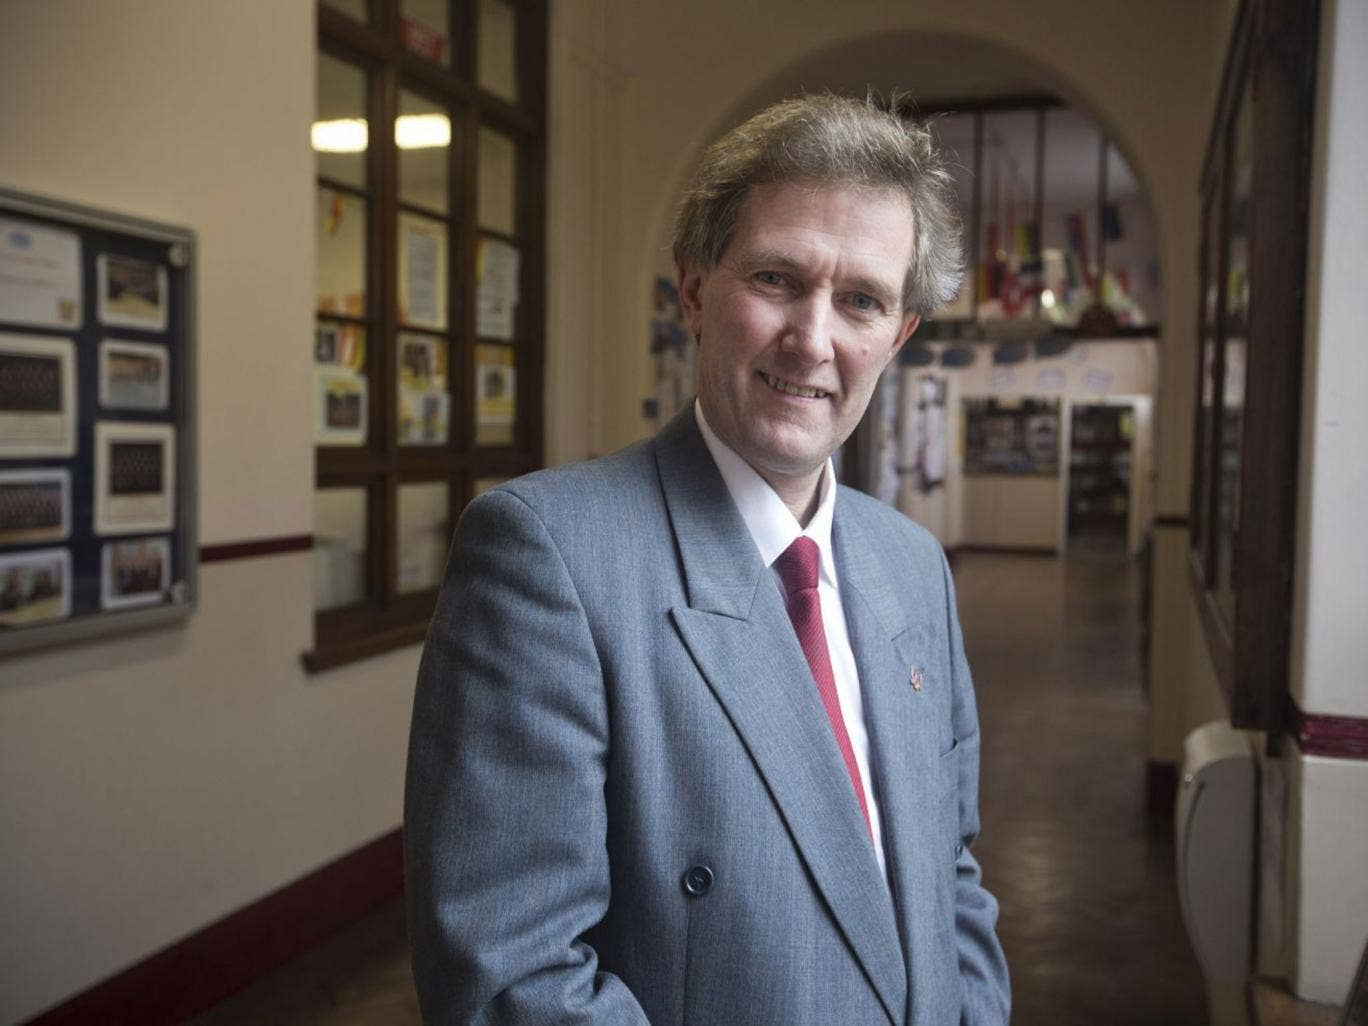 Head of St Mary's, Mike Kennedy, aims for 'all-comers'